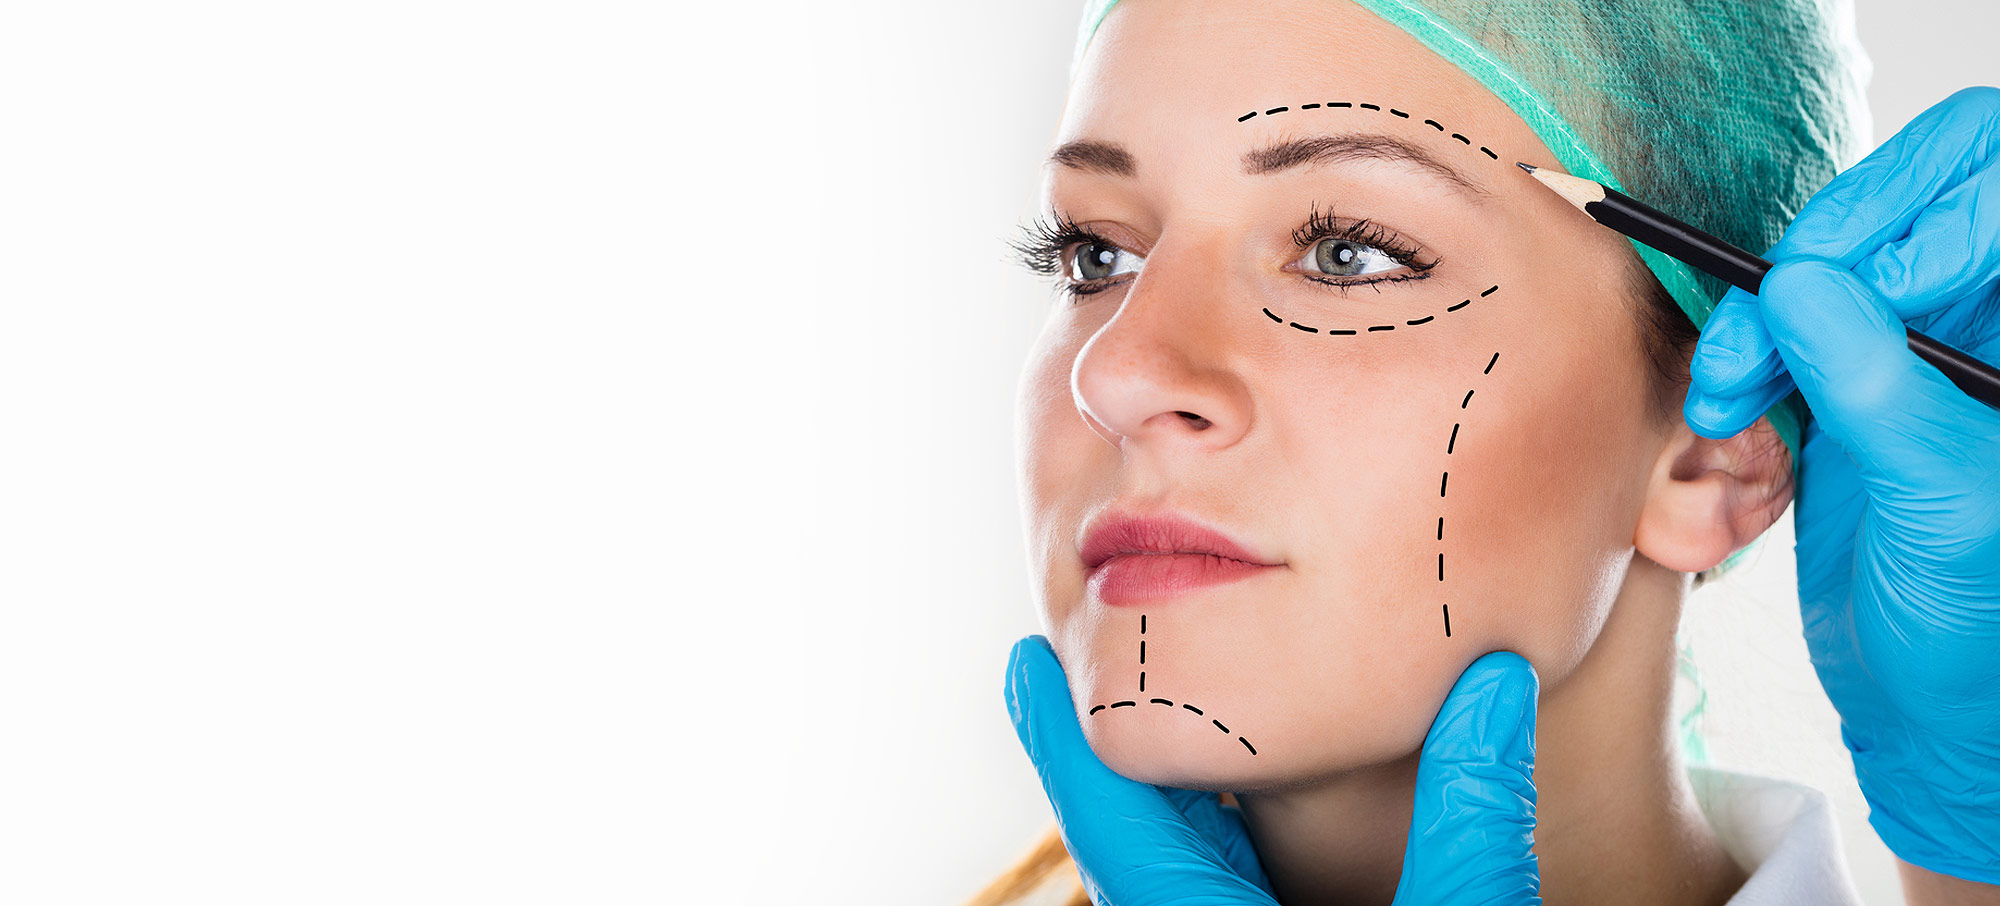 Chattanooga facial plastic surgery